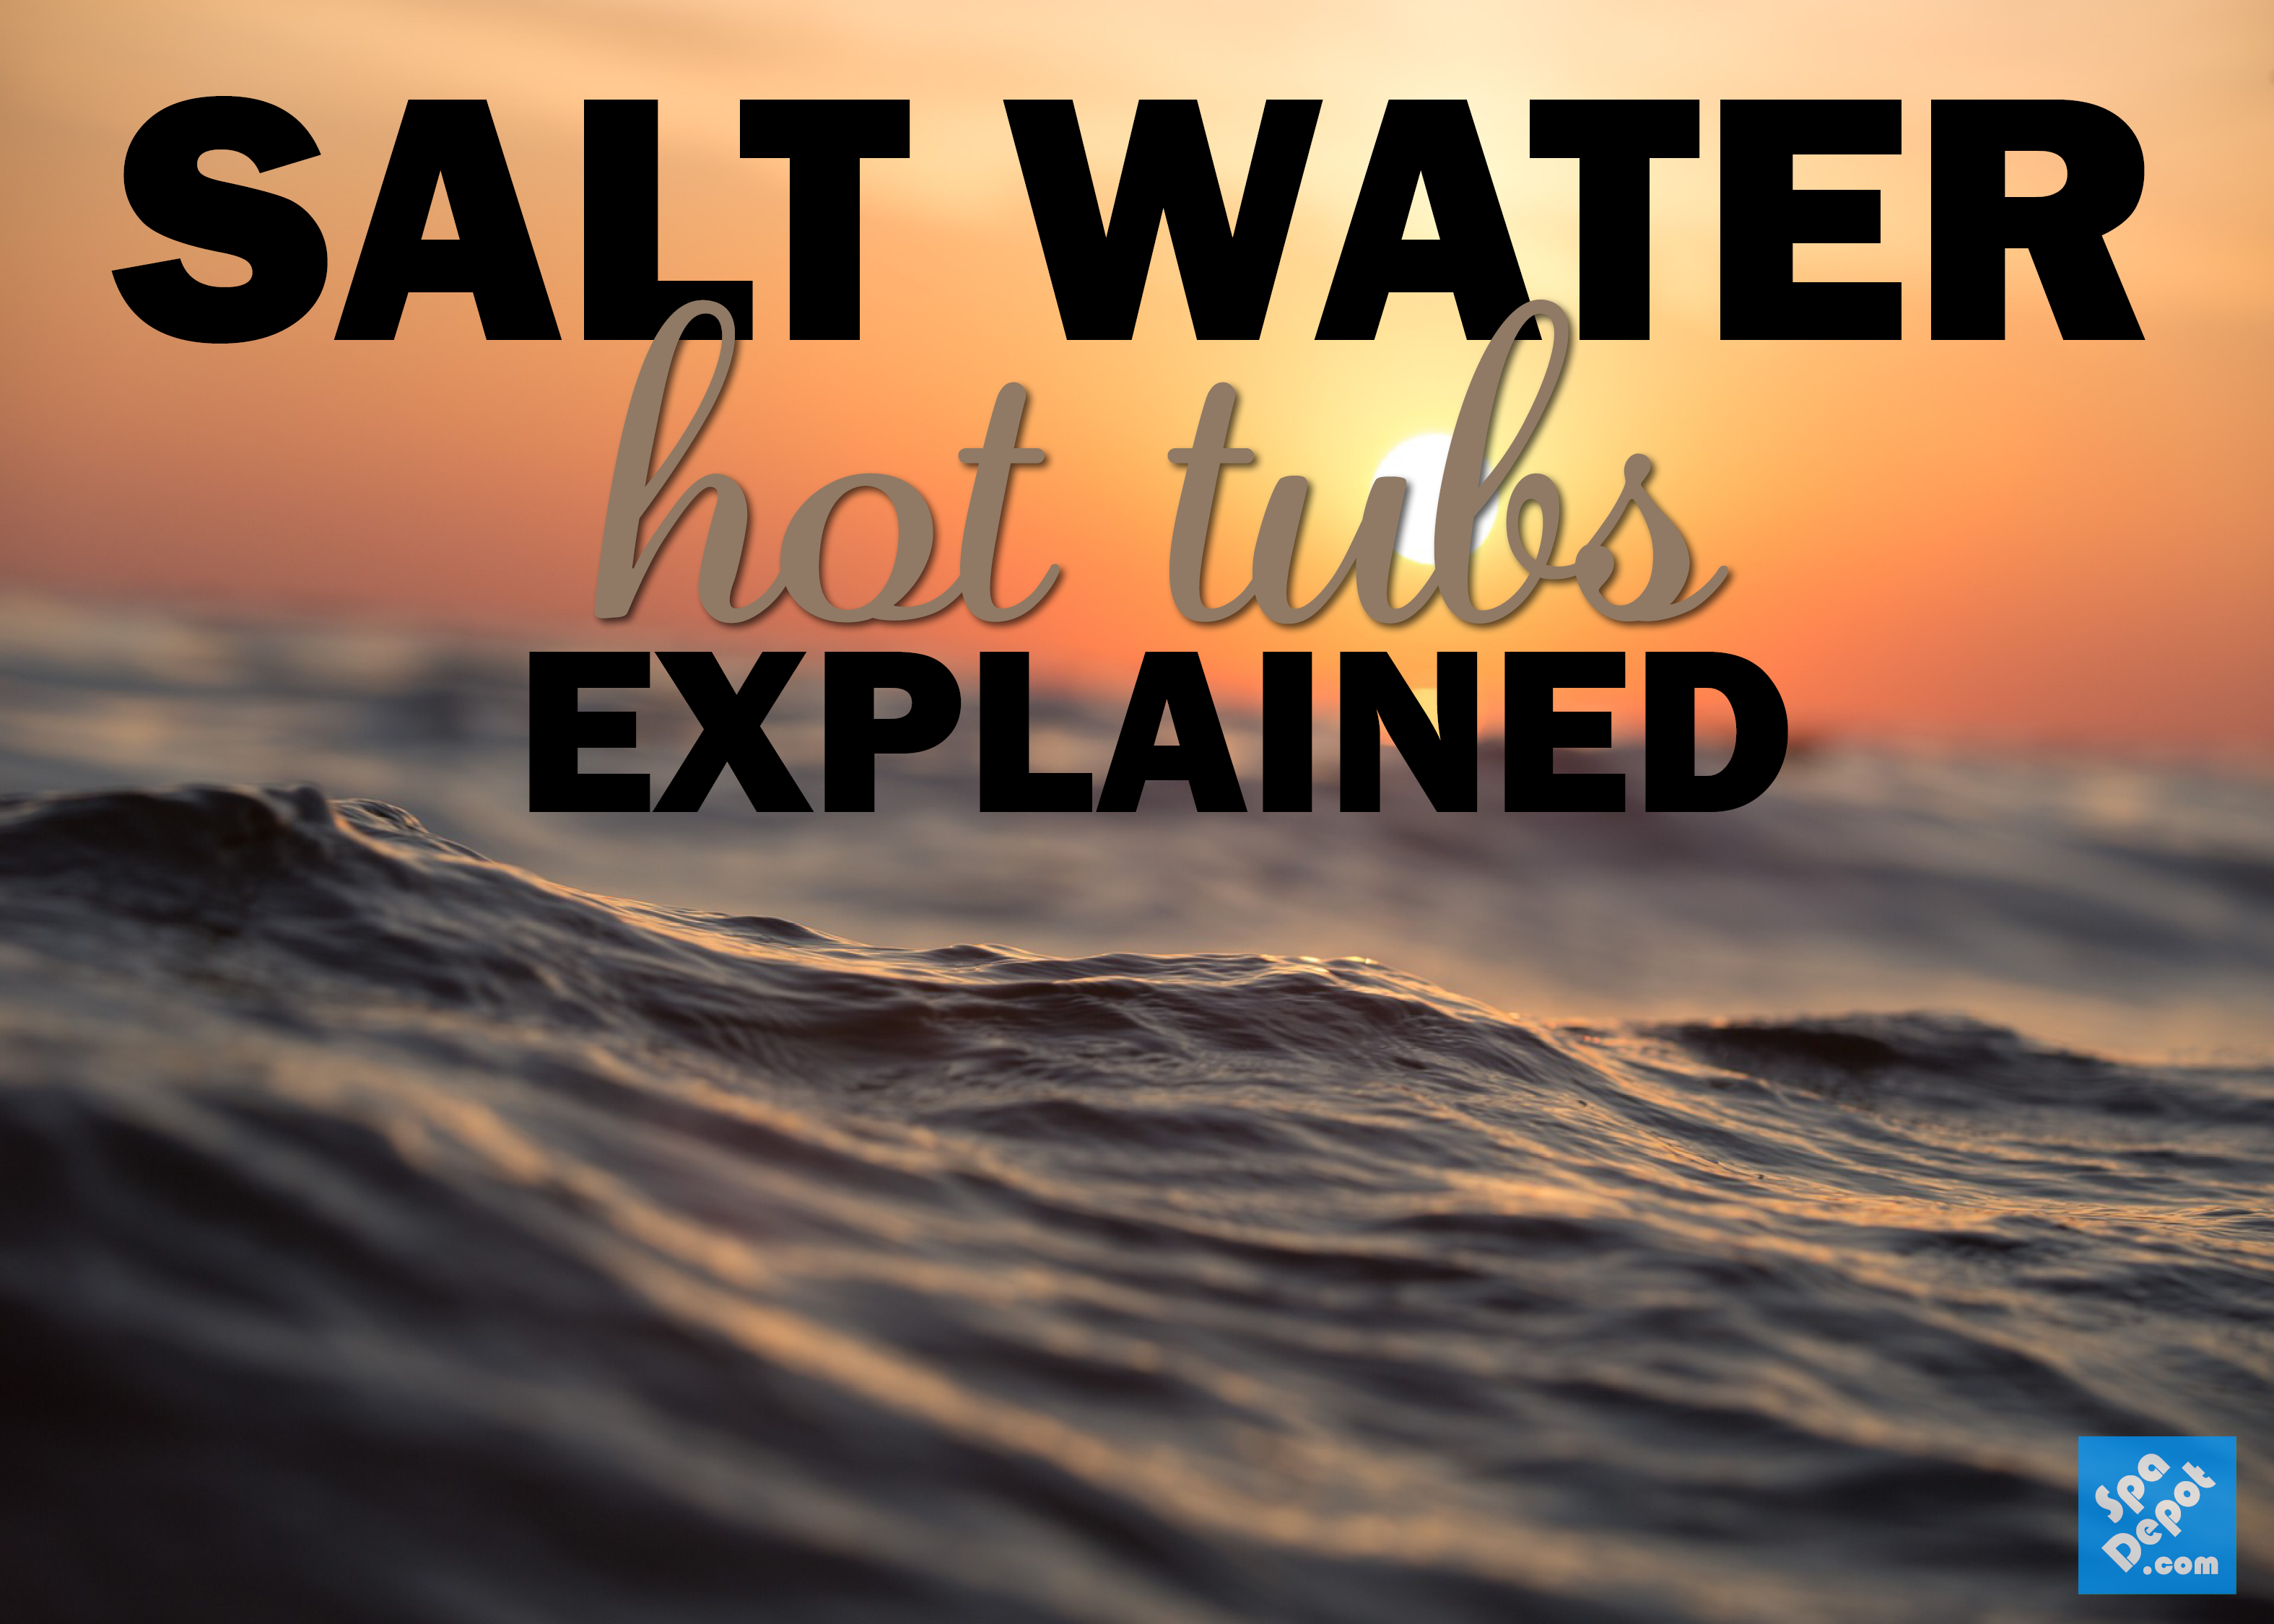 saltwater hot tubs explained - Saltwater Hot Tub